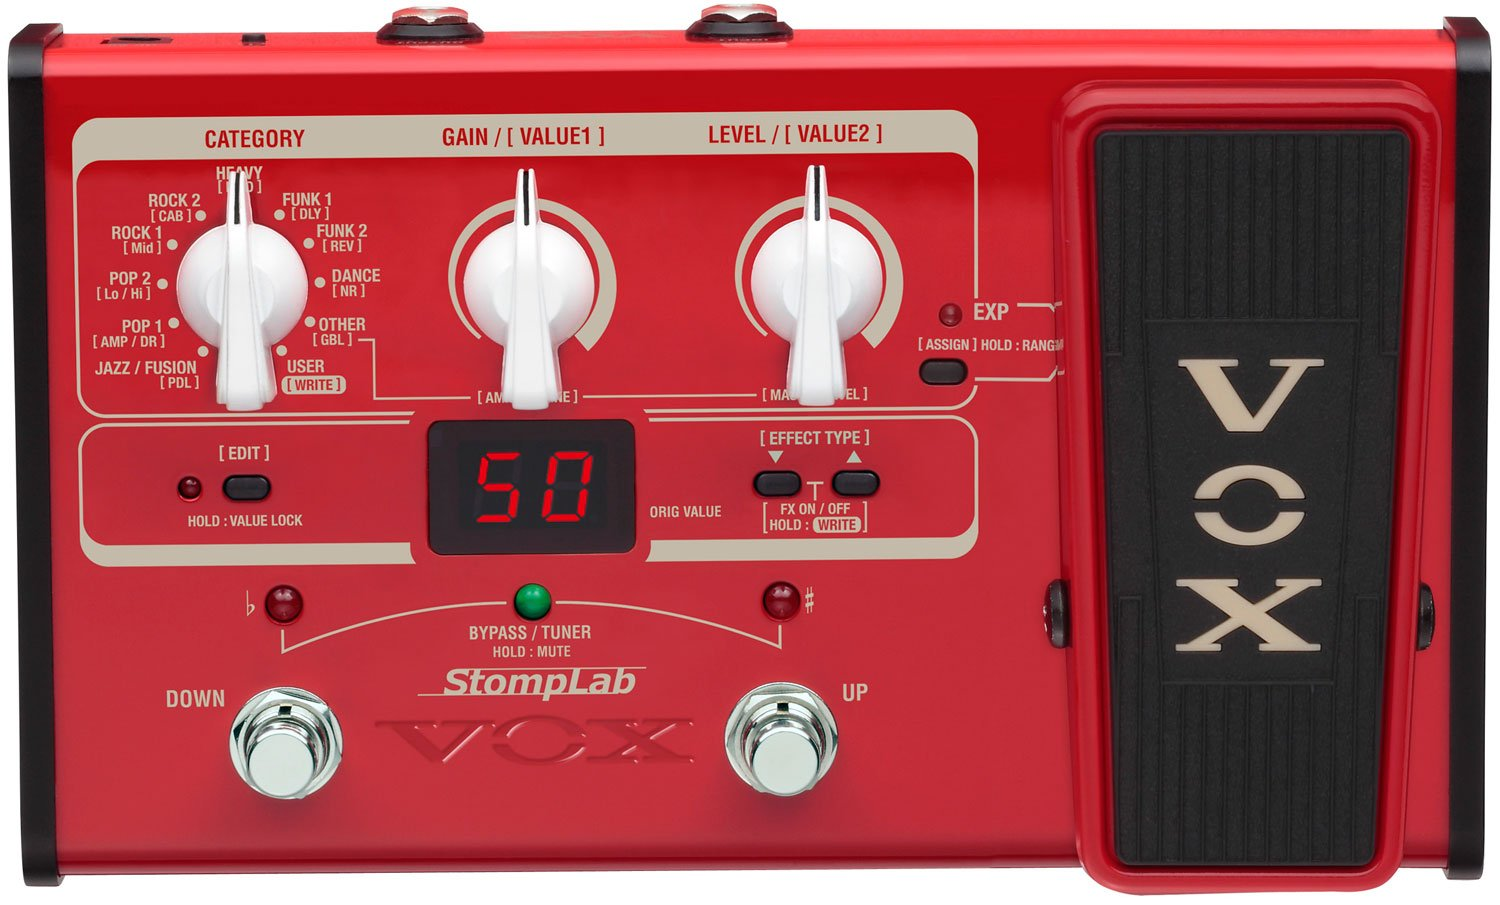 VOX SL1G 1G Amplifier Multi Effect Stomplab Pedal for Guitar STOMPLAB1G